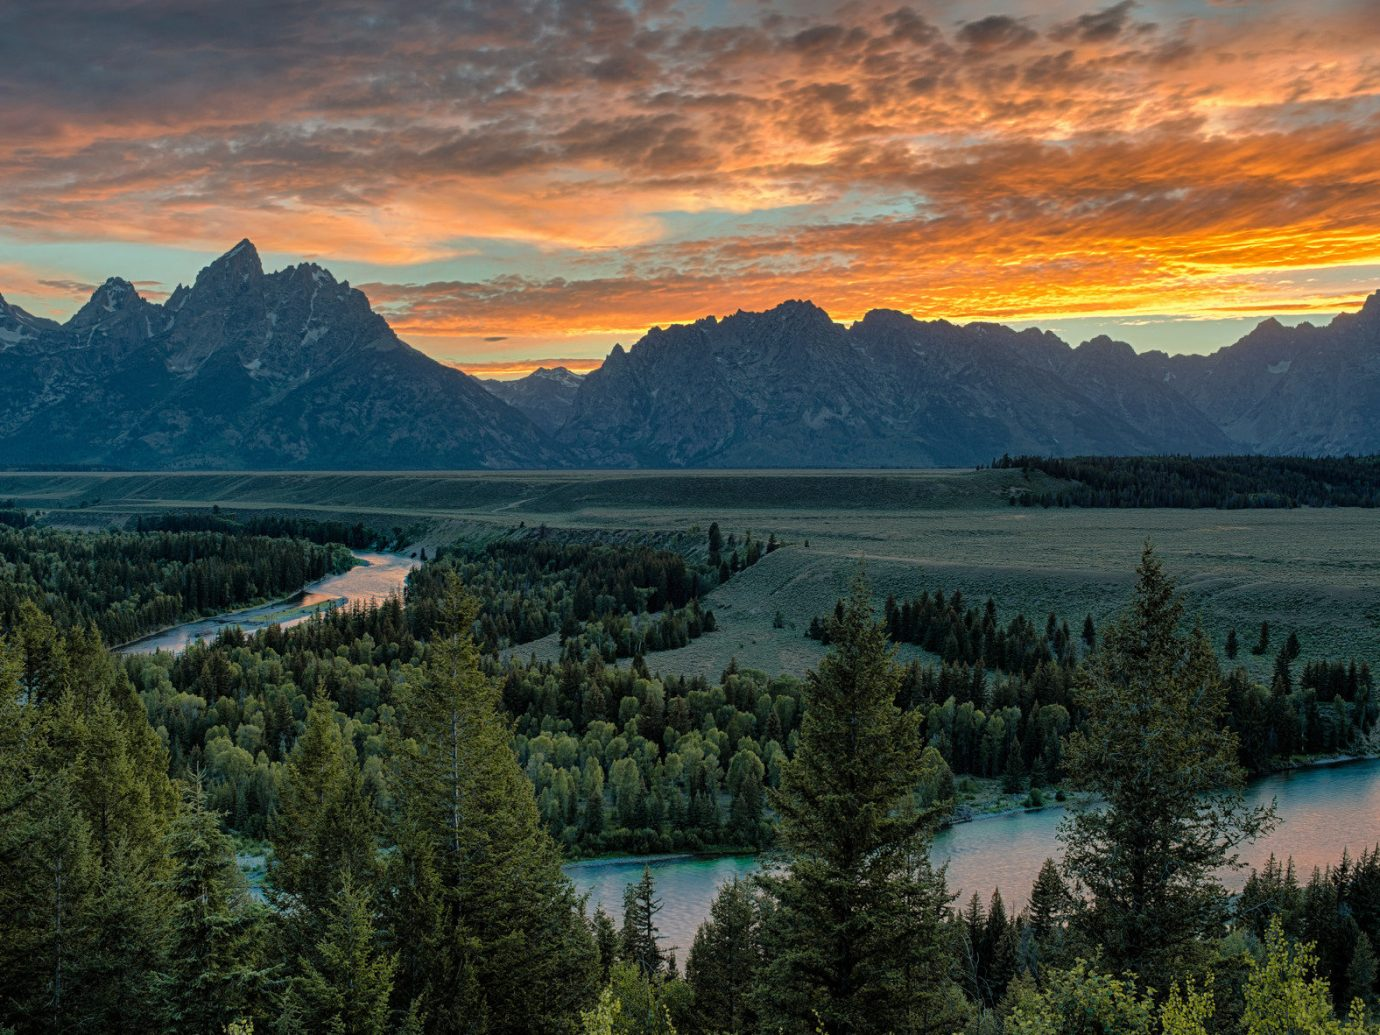 Travel Tips Trip Ideas mountain tree outdoor sky water mountainous landforms valley Nature canyon Lake grazing wilderness landform atmospheric phenomenon background cloud sunrise mountain range morning dawn hill reflection River landscape Sunset loch dusk evening plateau national park autumn hillside beautiful lush overlooking surrounded pasture Forest